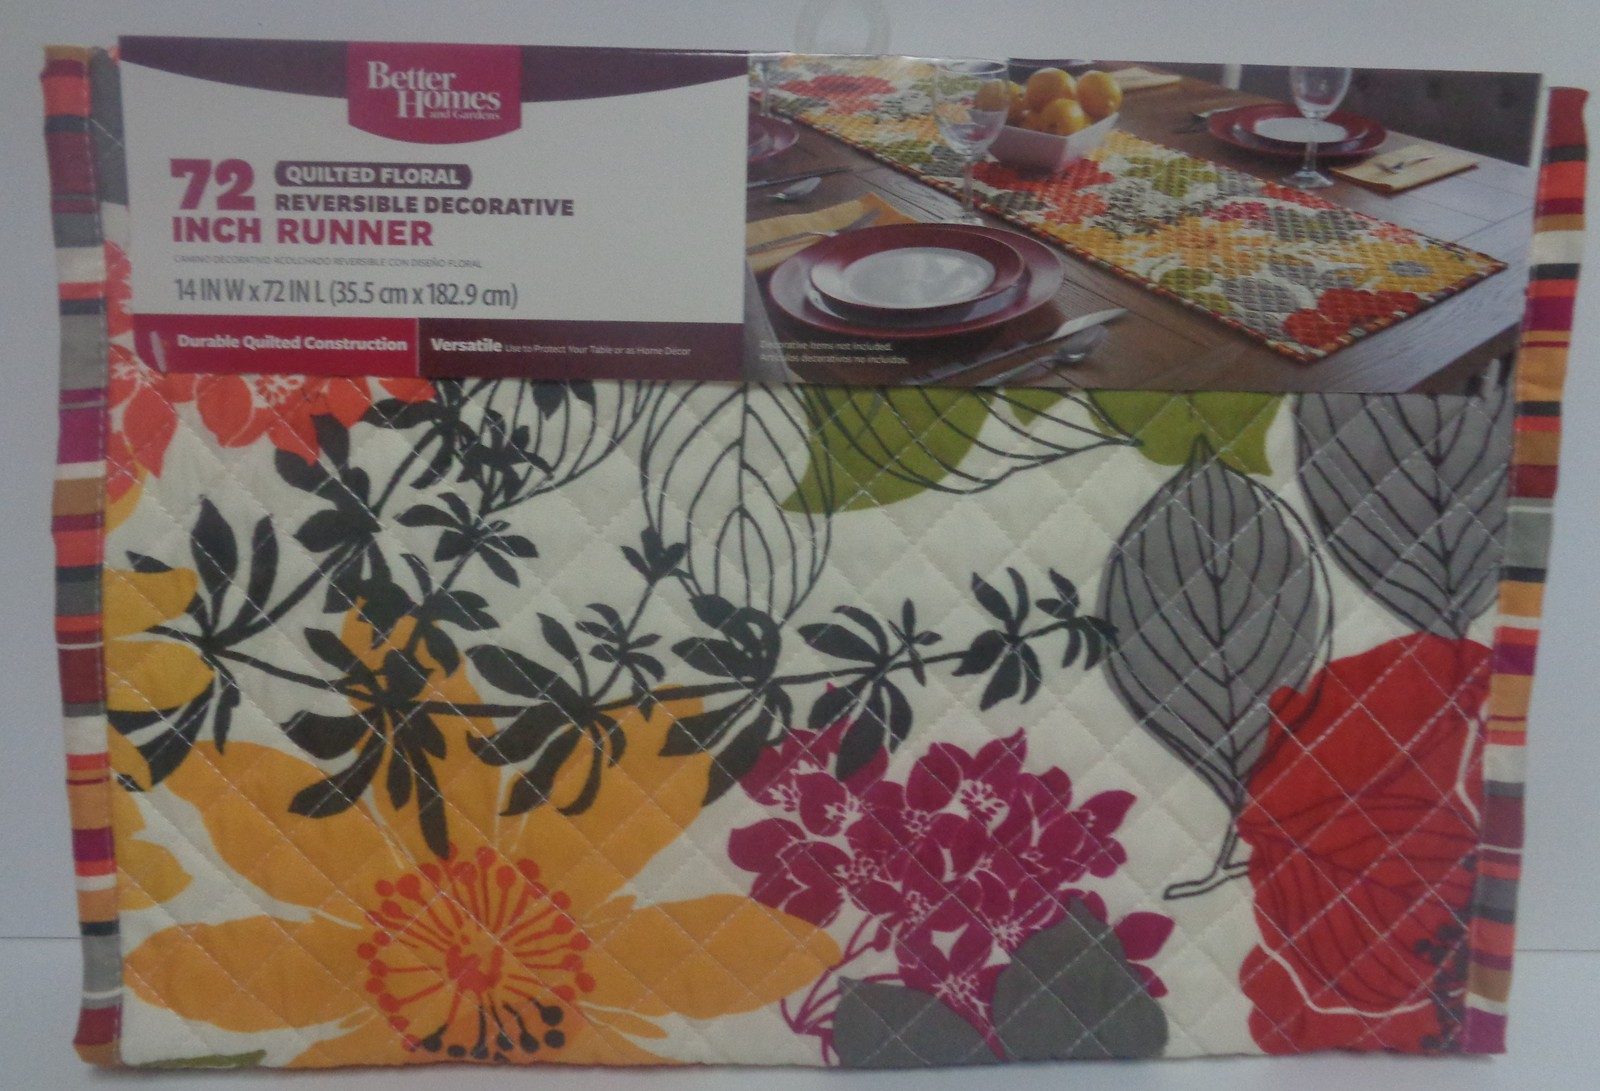 "Better Homes Reversible Quilted Floral Table Runner 72"" x 14"" NWT"